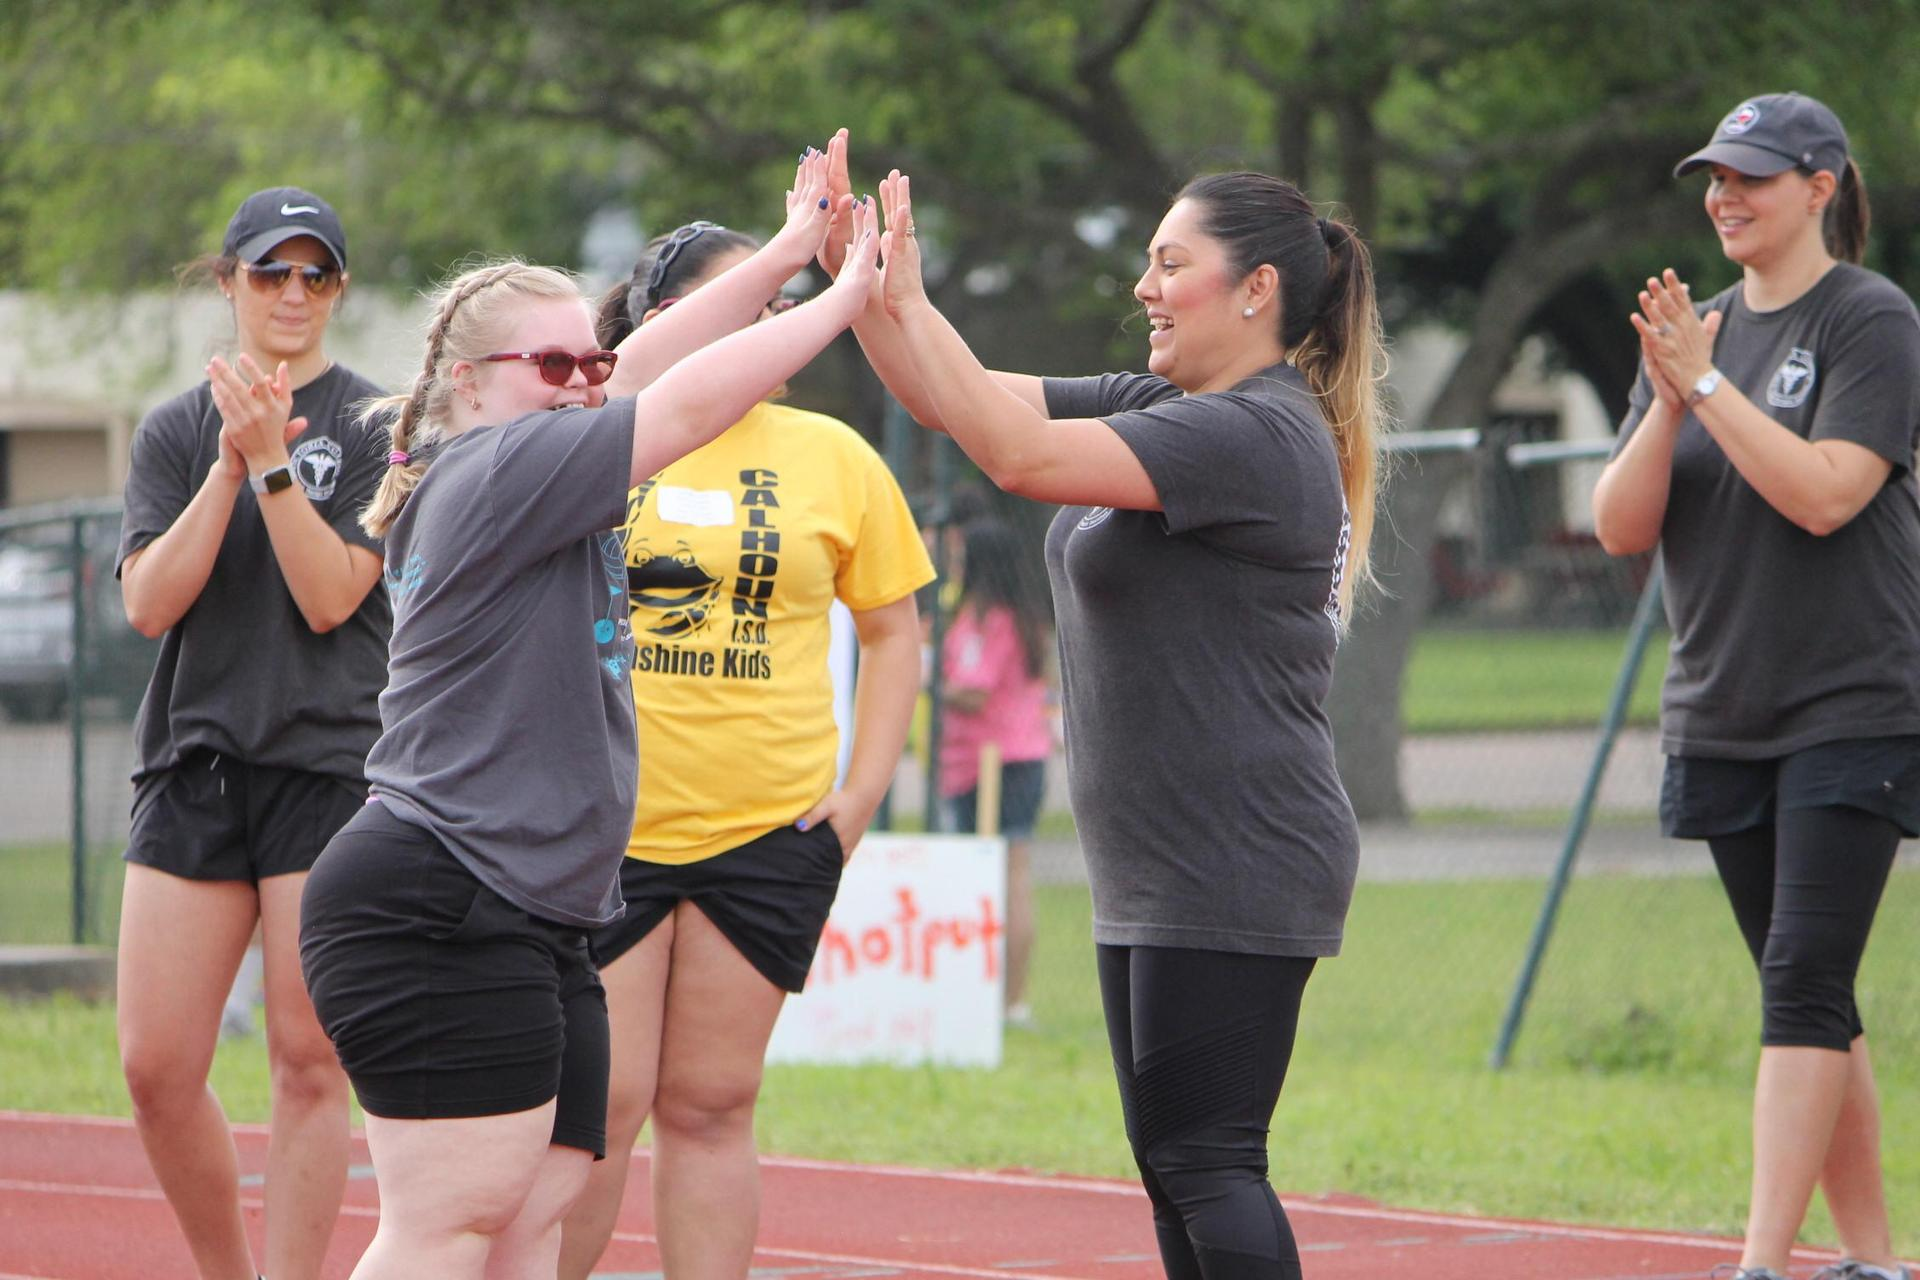 student high fiving a volunteer at the finish line of a race